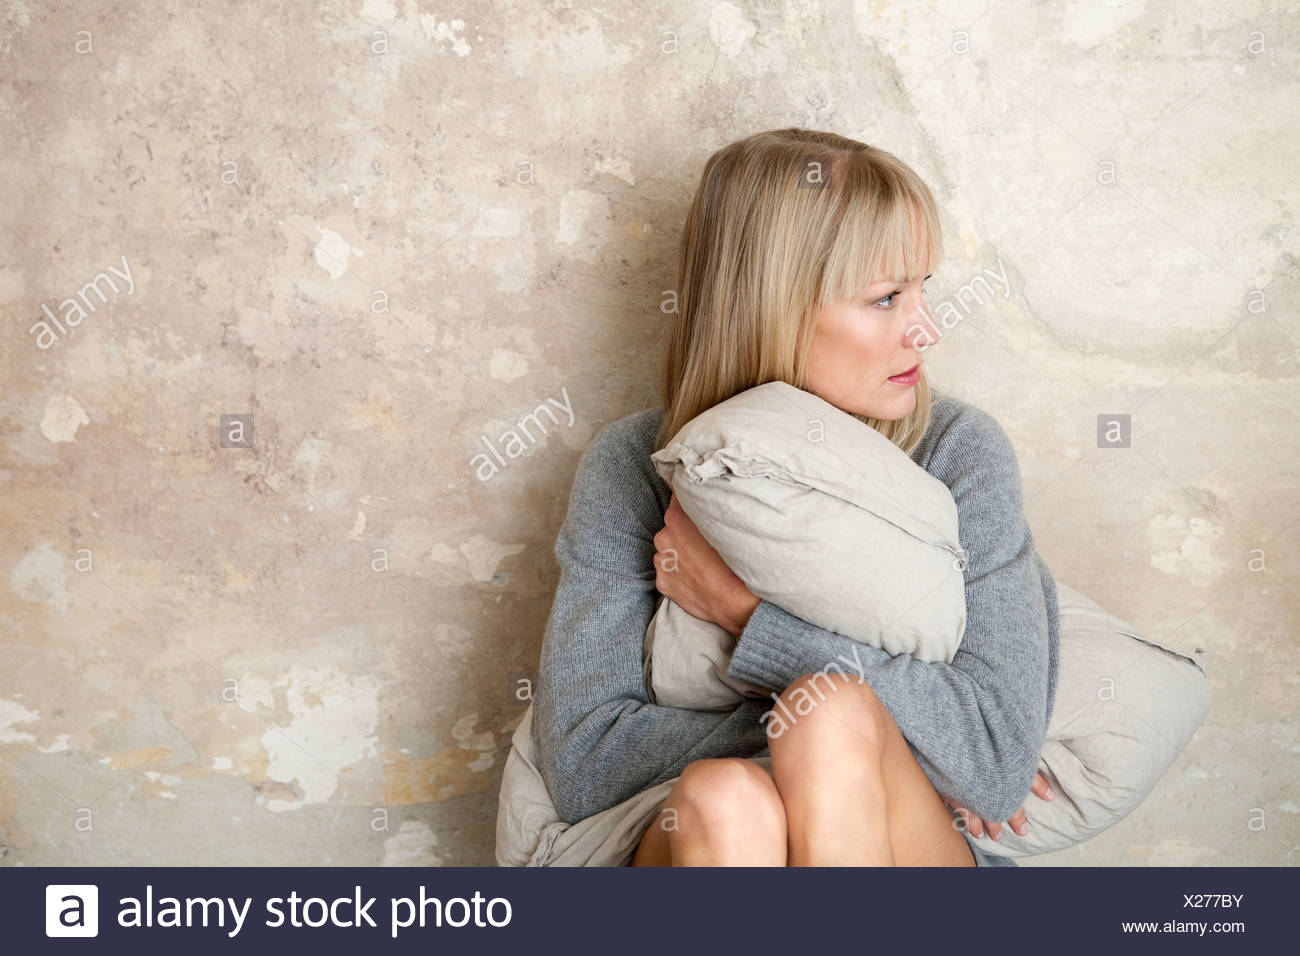 woman sitting on floor with pillow - Stock Image